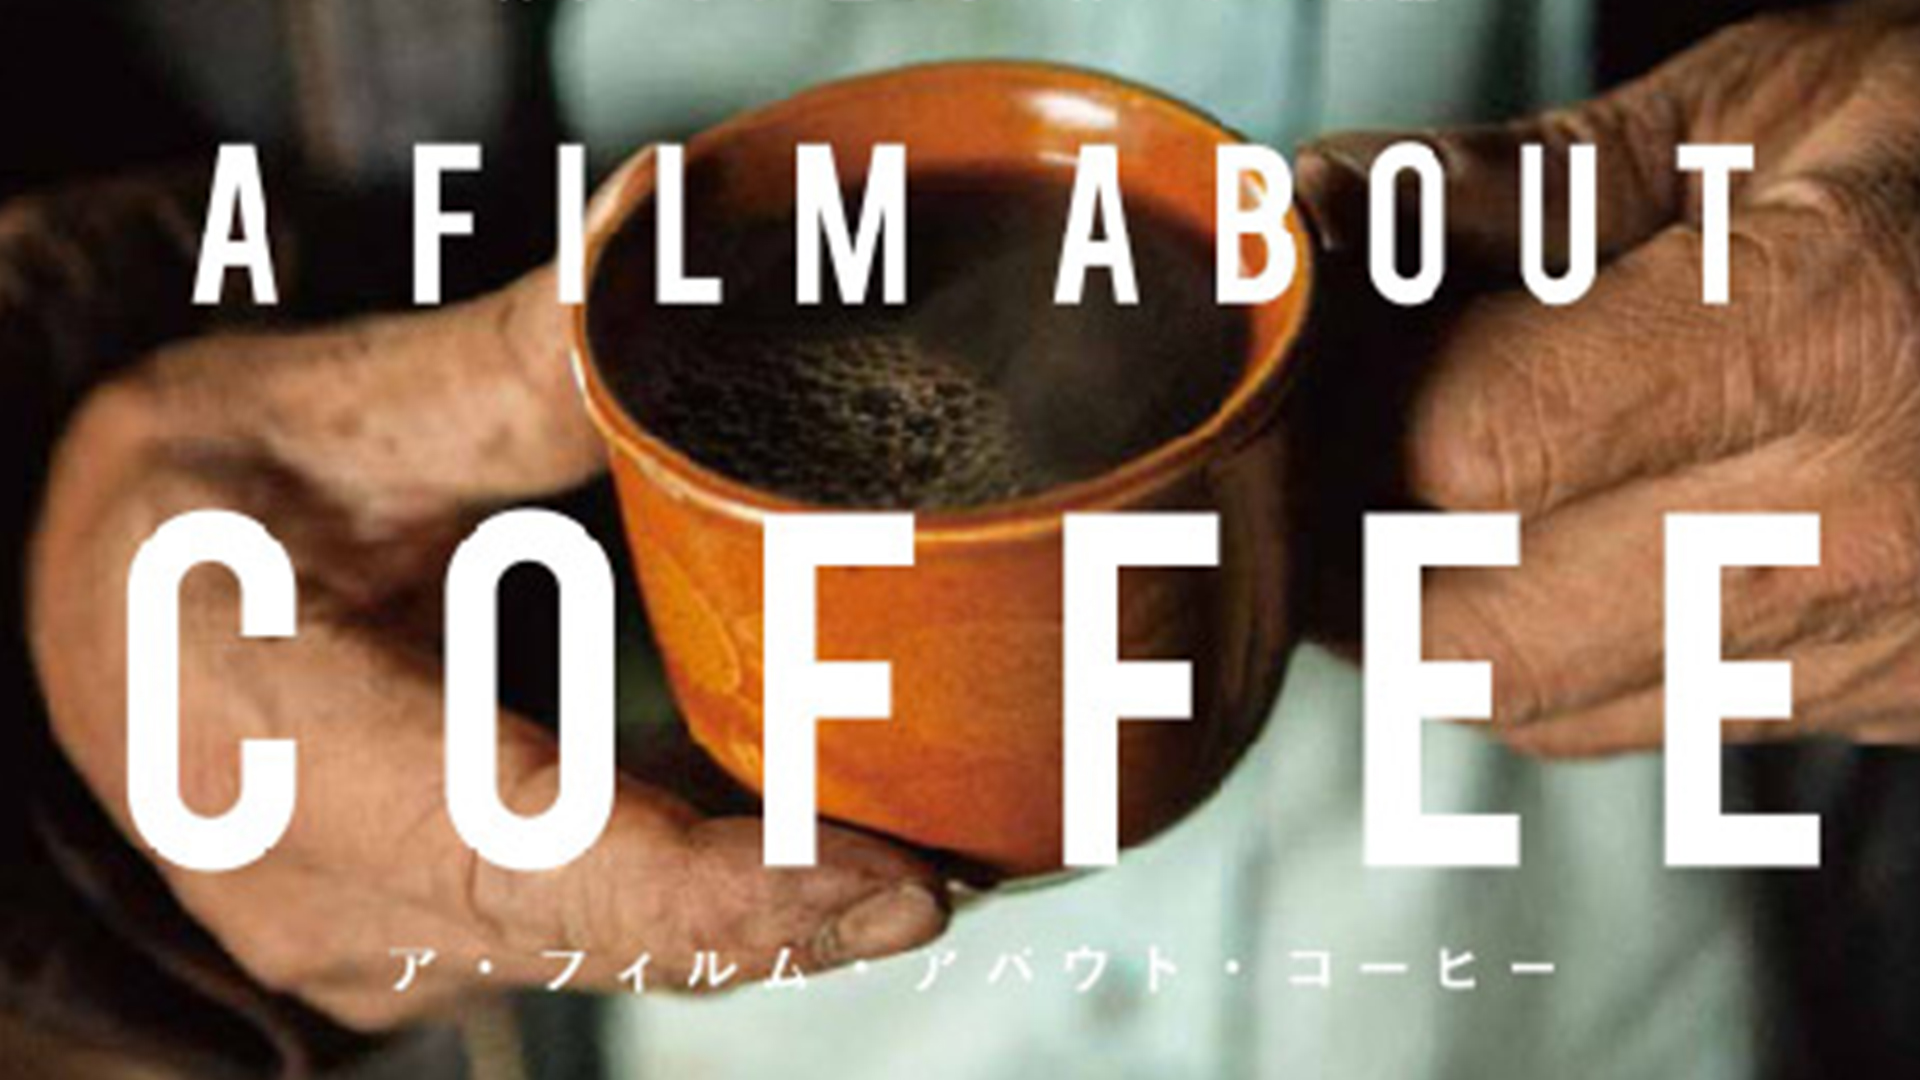 A Film About Coffee/ア・フィルム・アバウト・コーヒー